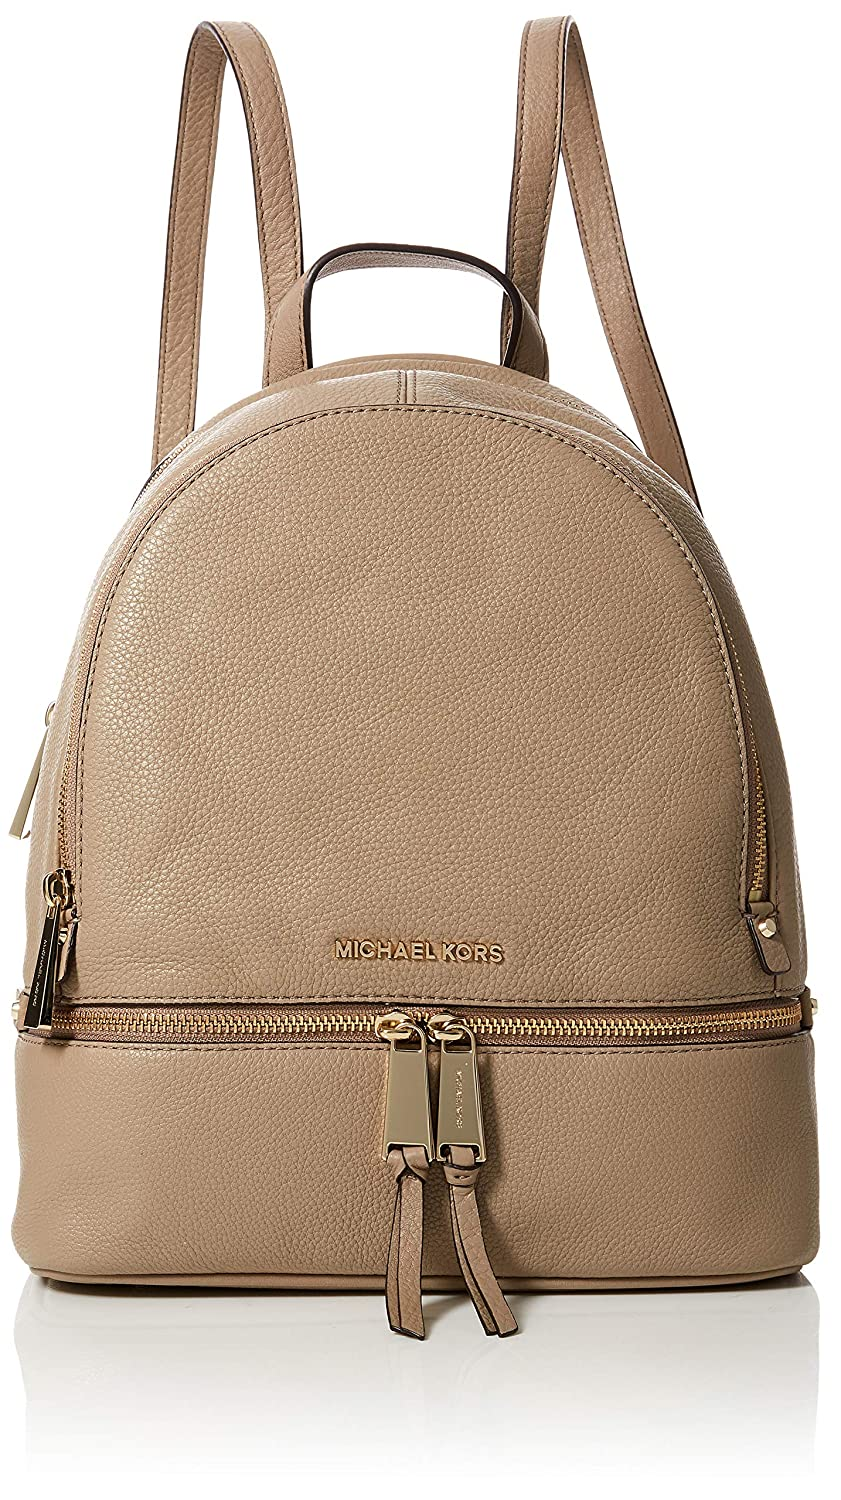 c0e35bc3905f Amazon.com  Michael Kors Womens Rhea Zip Backpack Handbag Beige (TRUFFLE)   Shoes